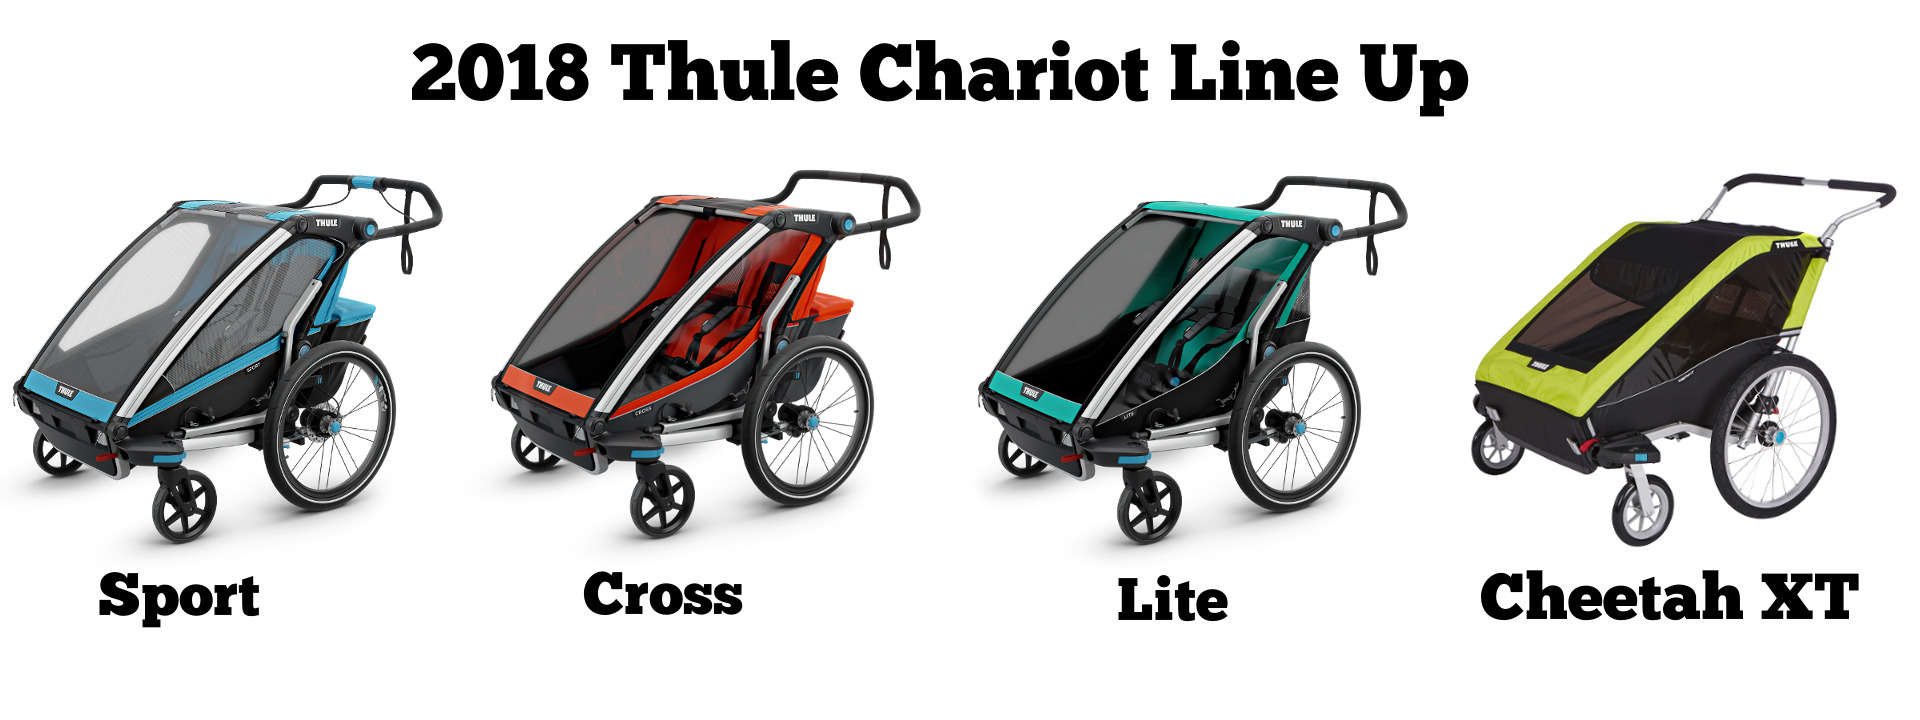 Thule Chariot child carriers new for 2017, Cheetah XT, Lite, and Cross